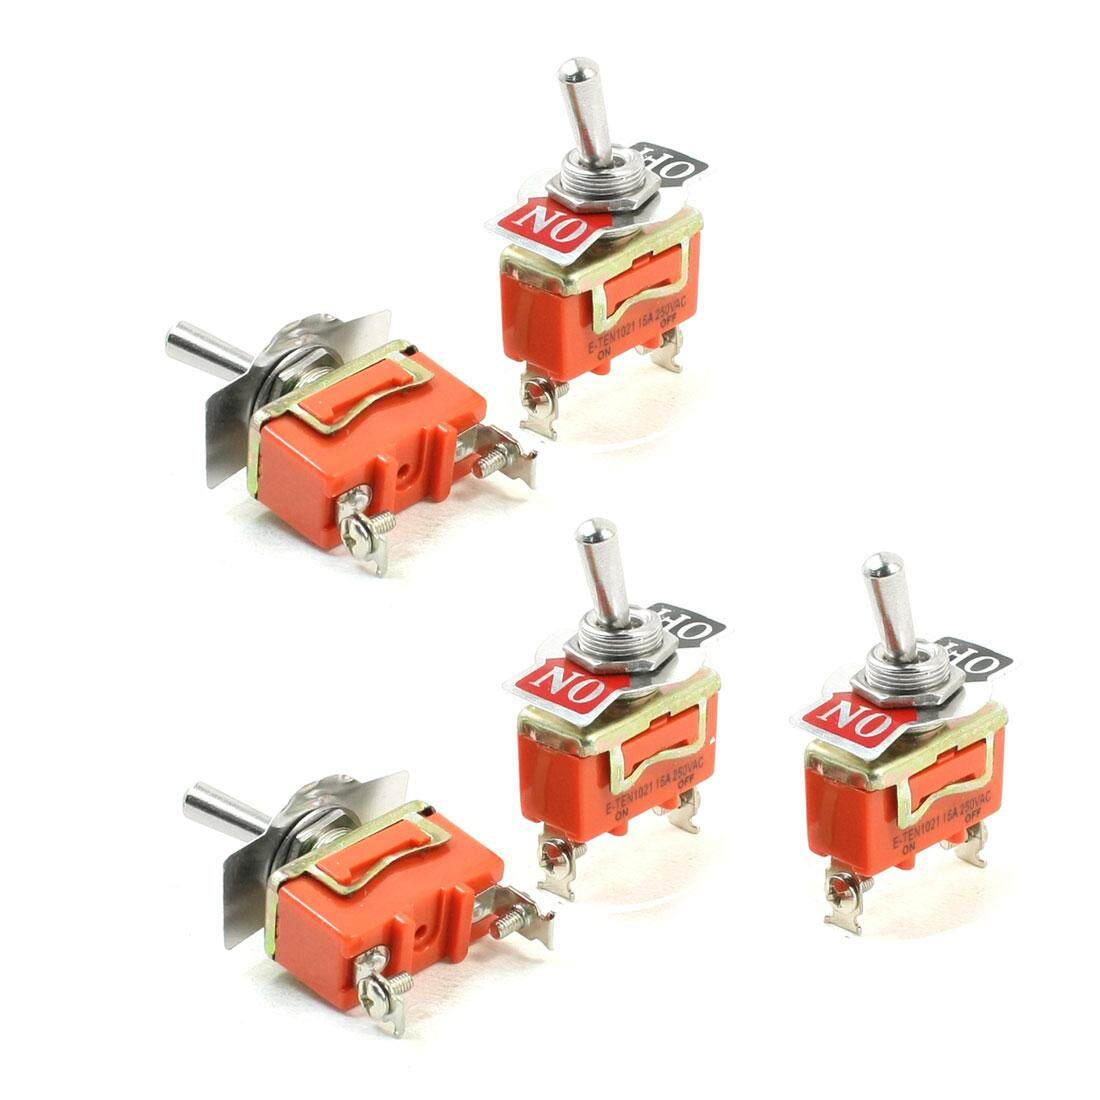 Features Axa Ac 380v 20a 4kw 3 Positions 3no 3nc Latching Rotary 2 Way Changeover Switch 5pcs Panel Mounted On Off Spst Toggle Ac250v 15a